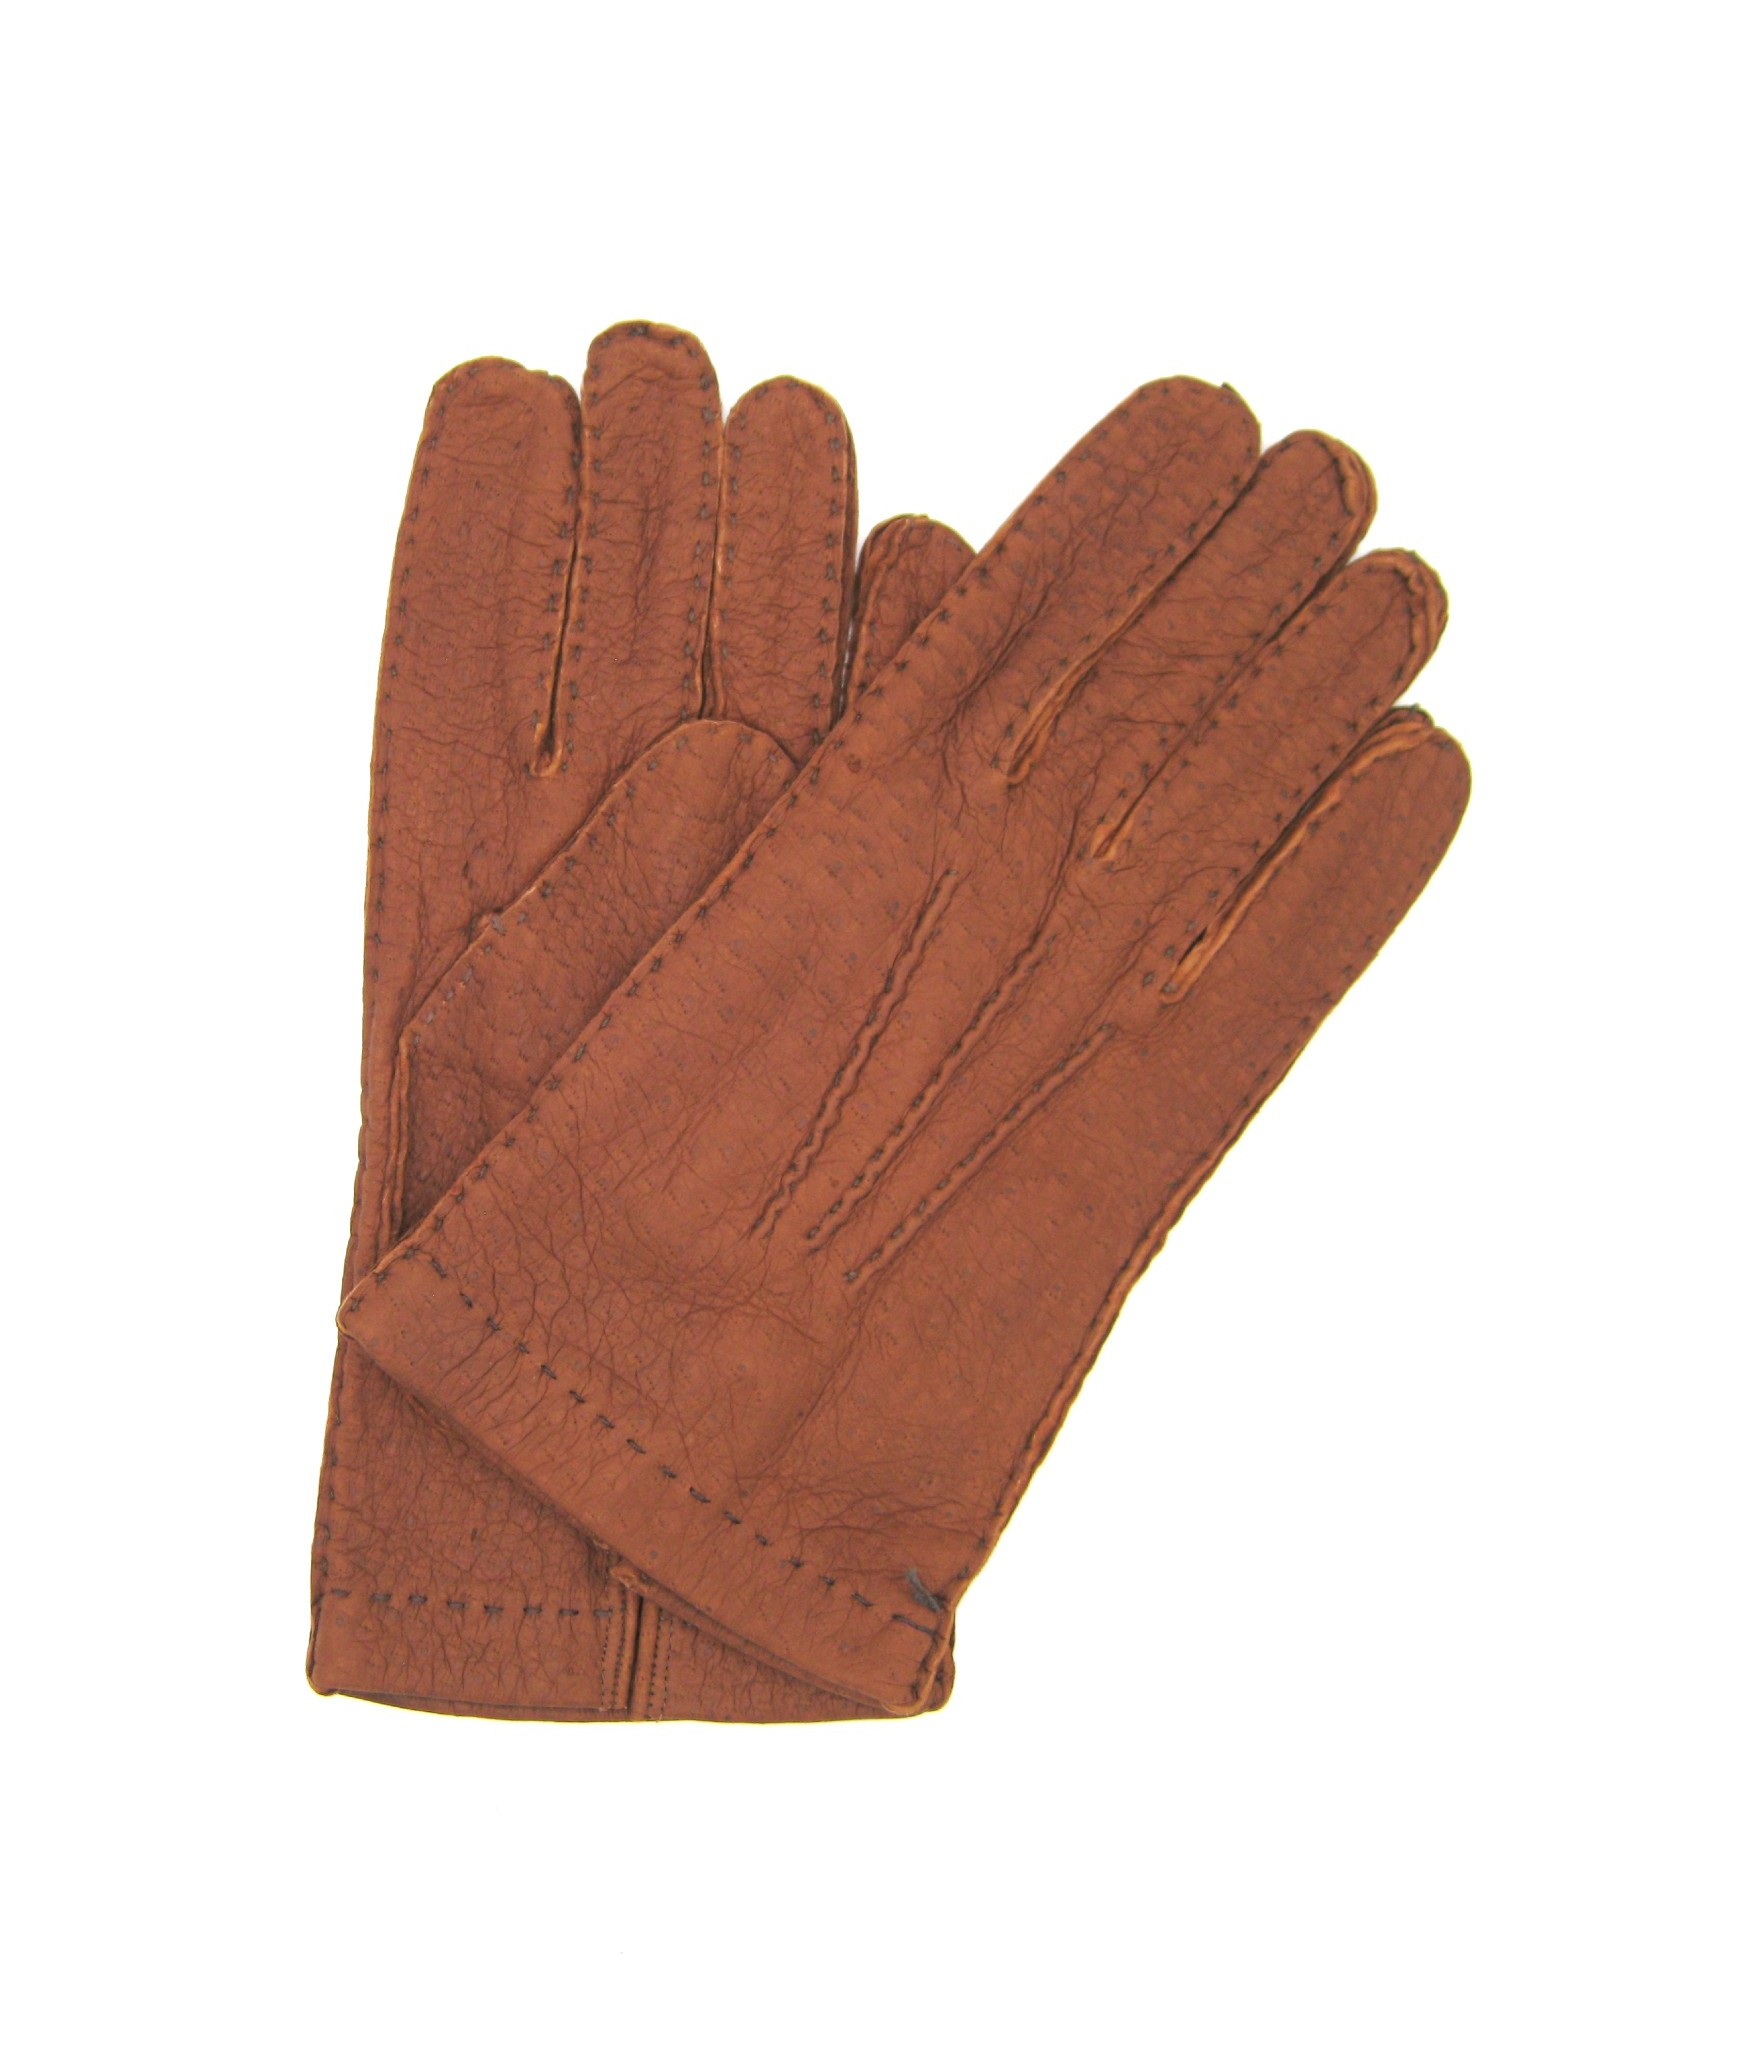 Unlined Peccary leather gloves, Hand Stitching Tobacco